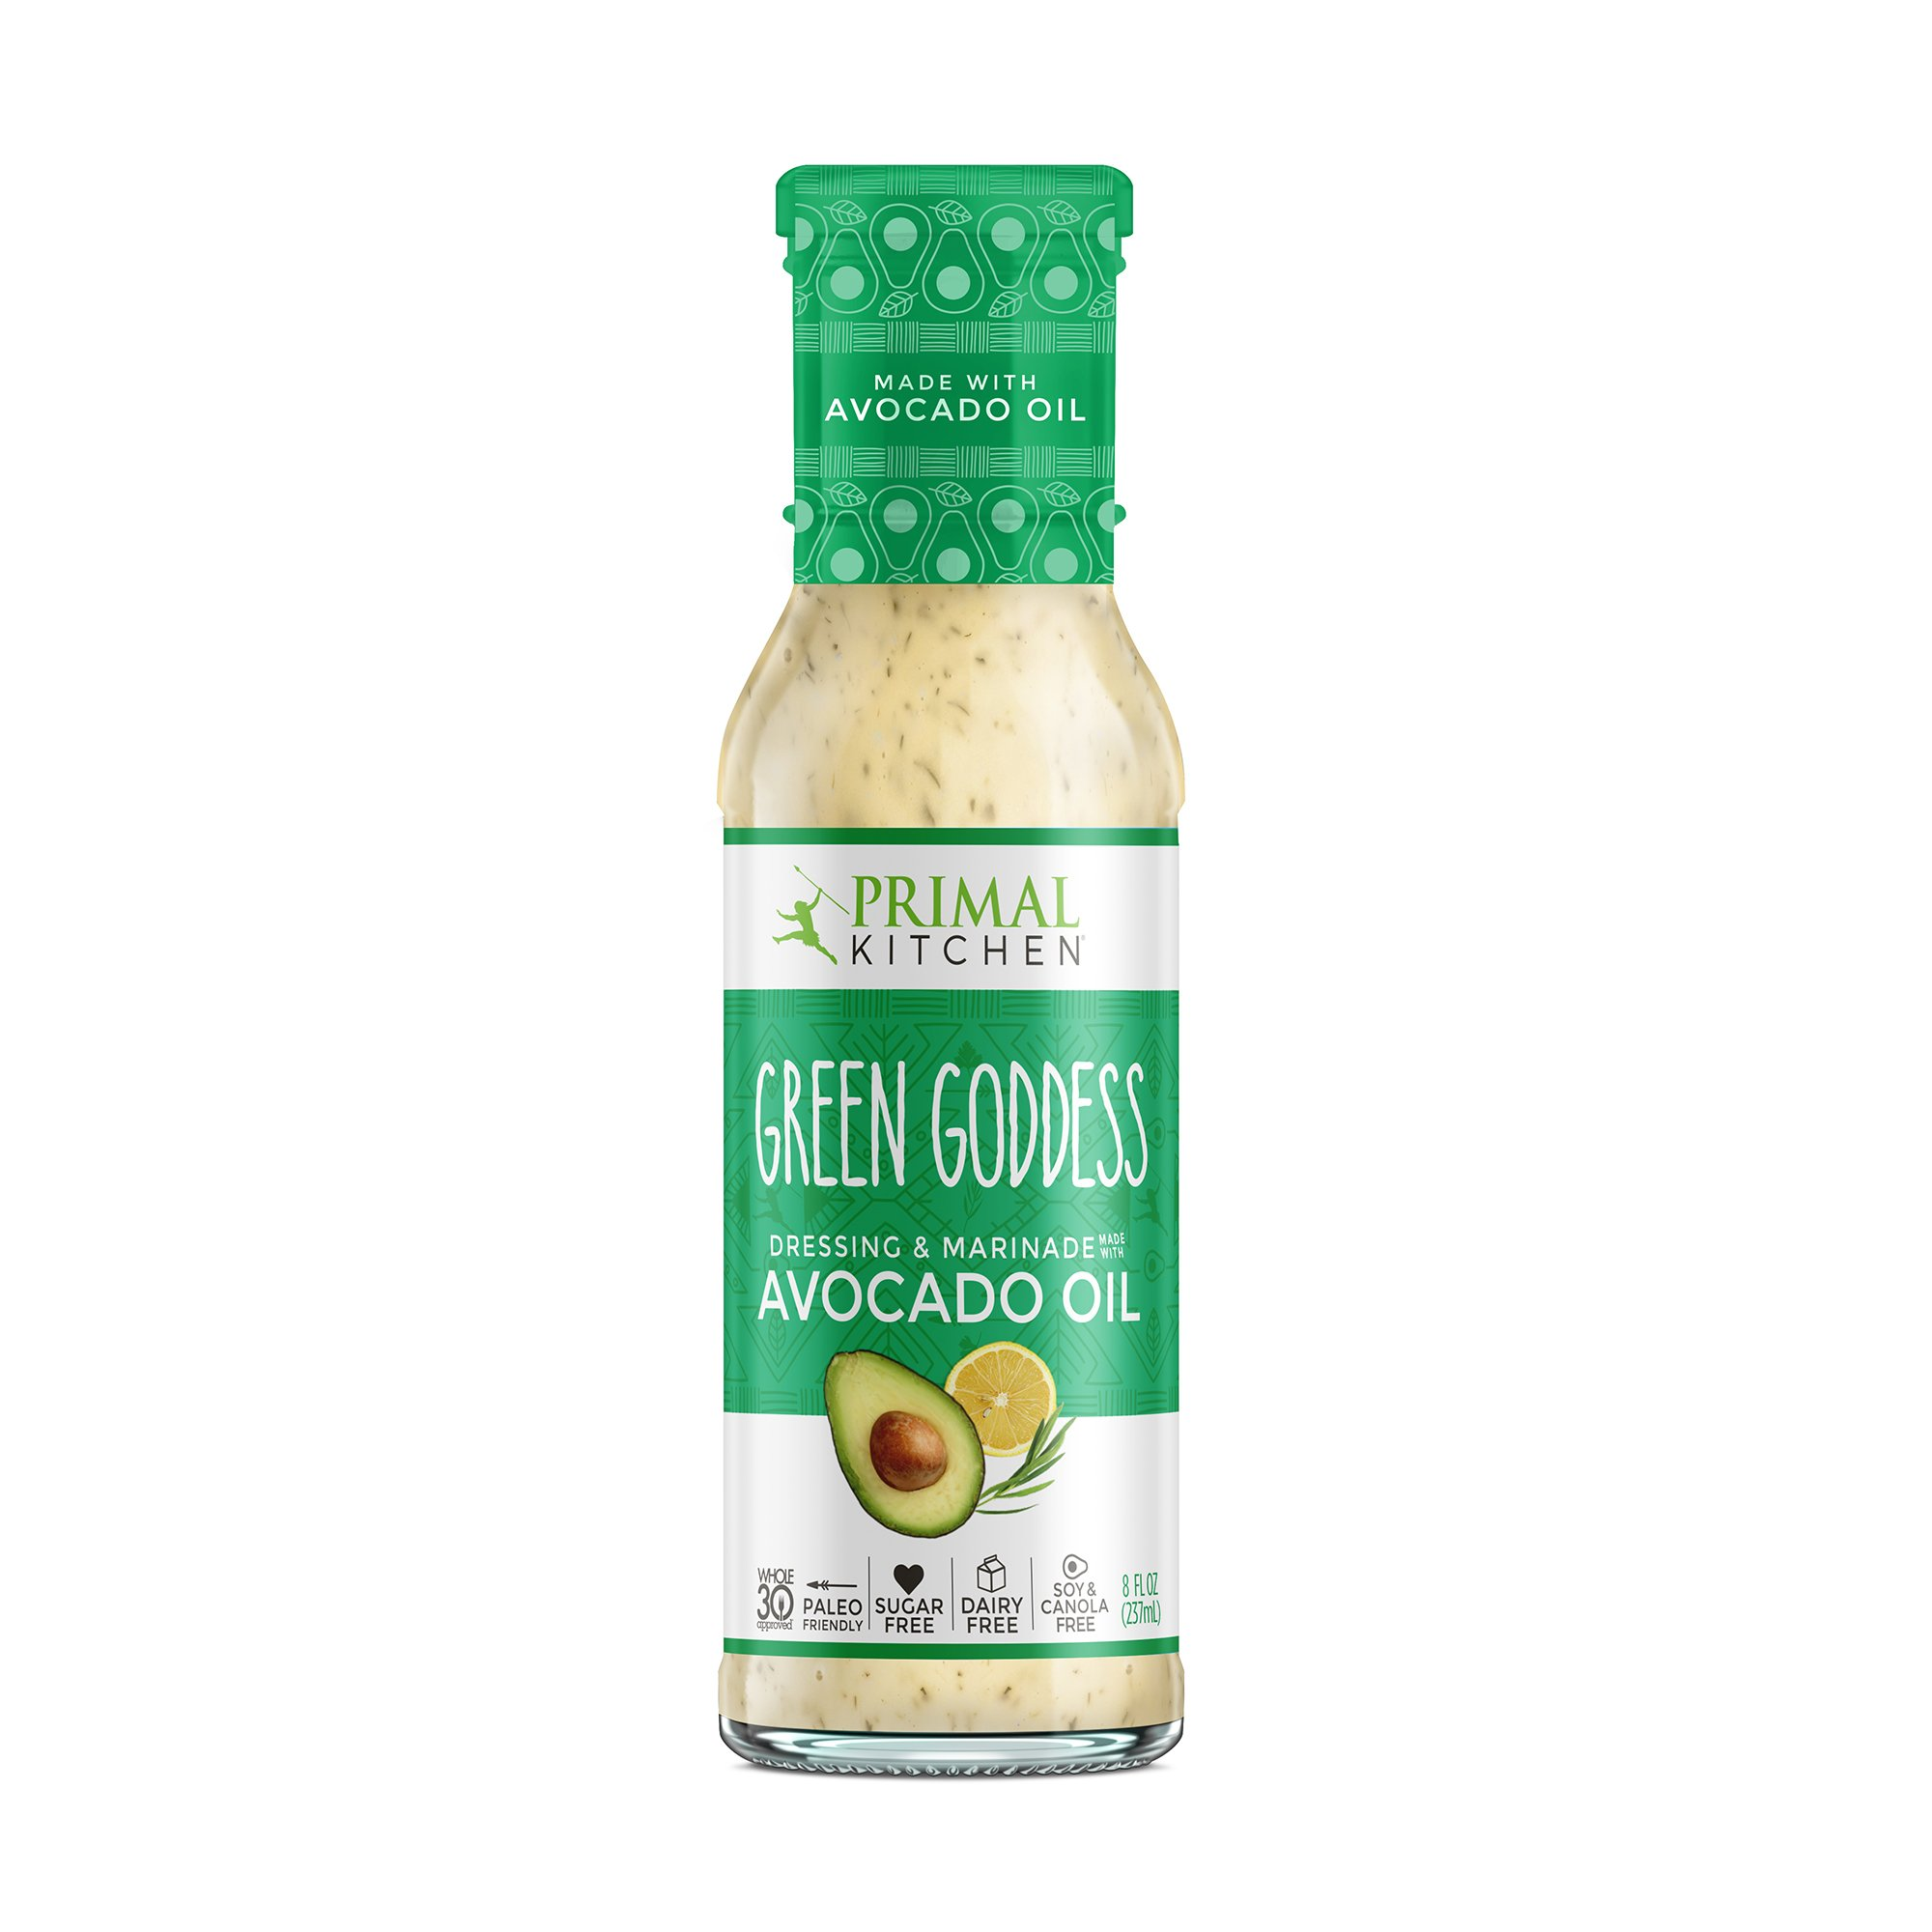 Primal Kitchen - Avocado Oil-Based Dressing and Marinade, Green Goddess, 8 fl oz, Whole30 and Paleo Approved